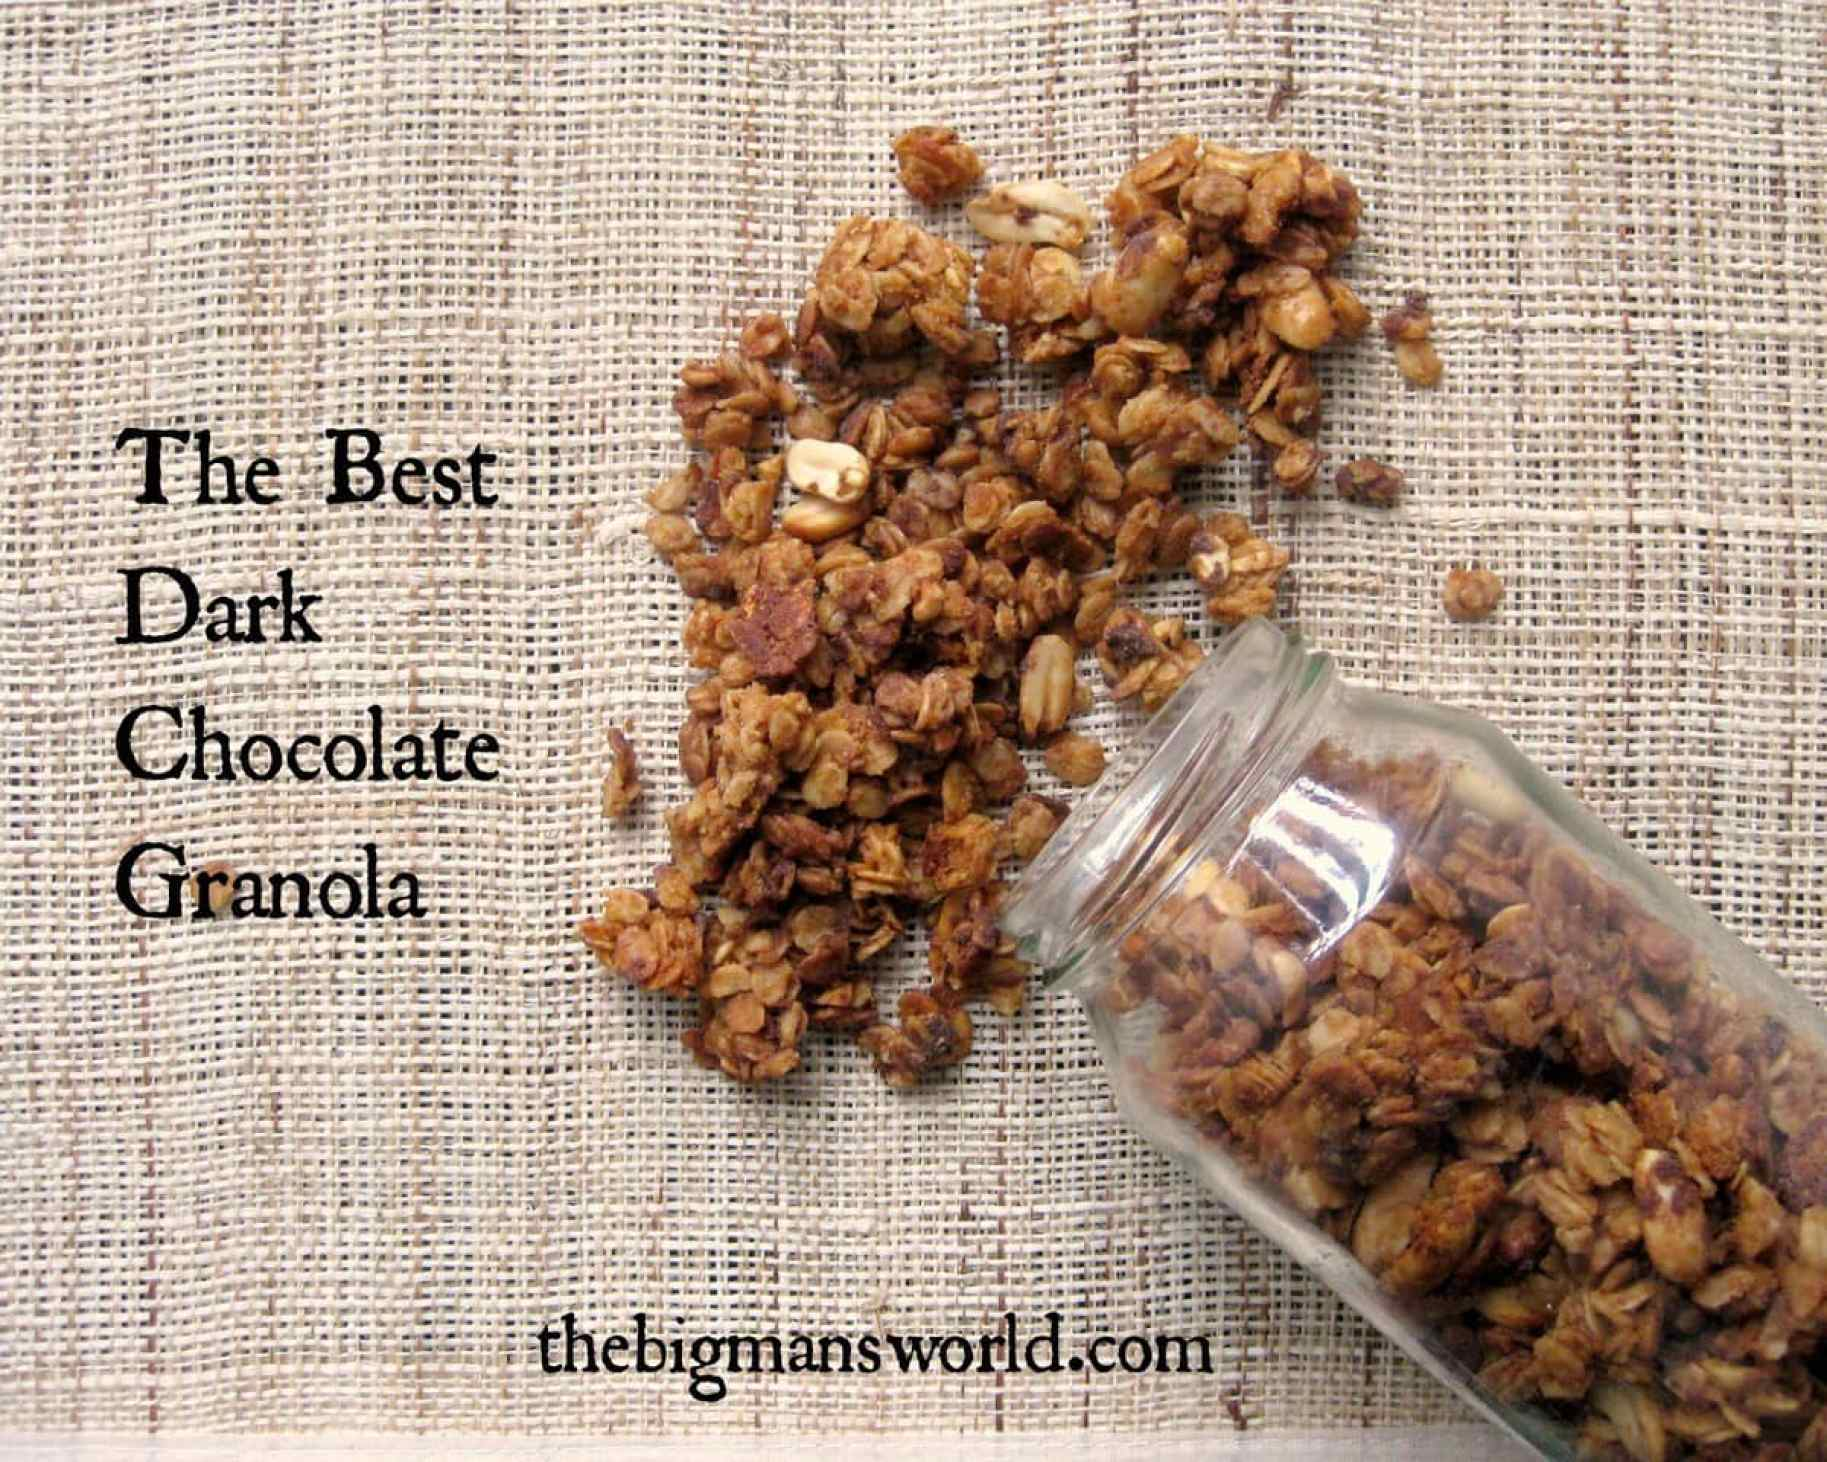 best_dark_chocolate_granola2.jpg